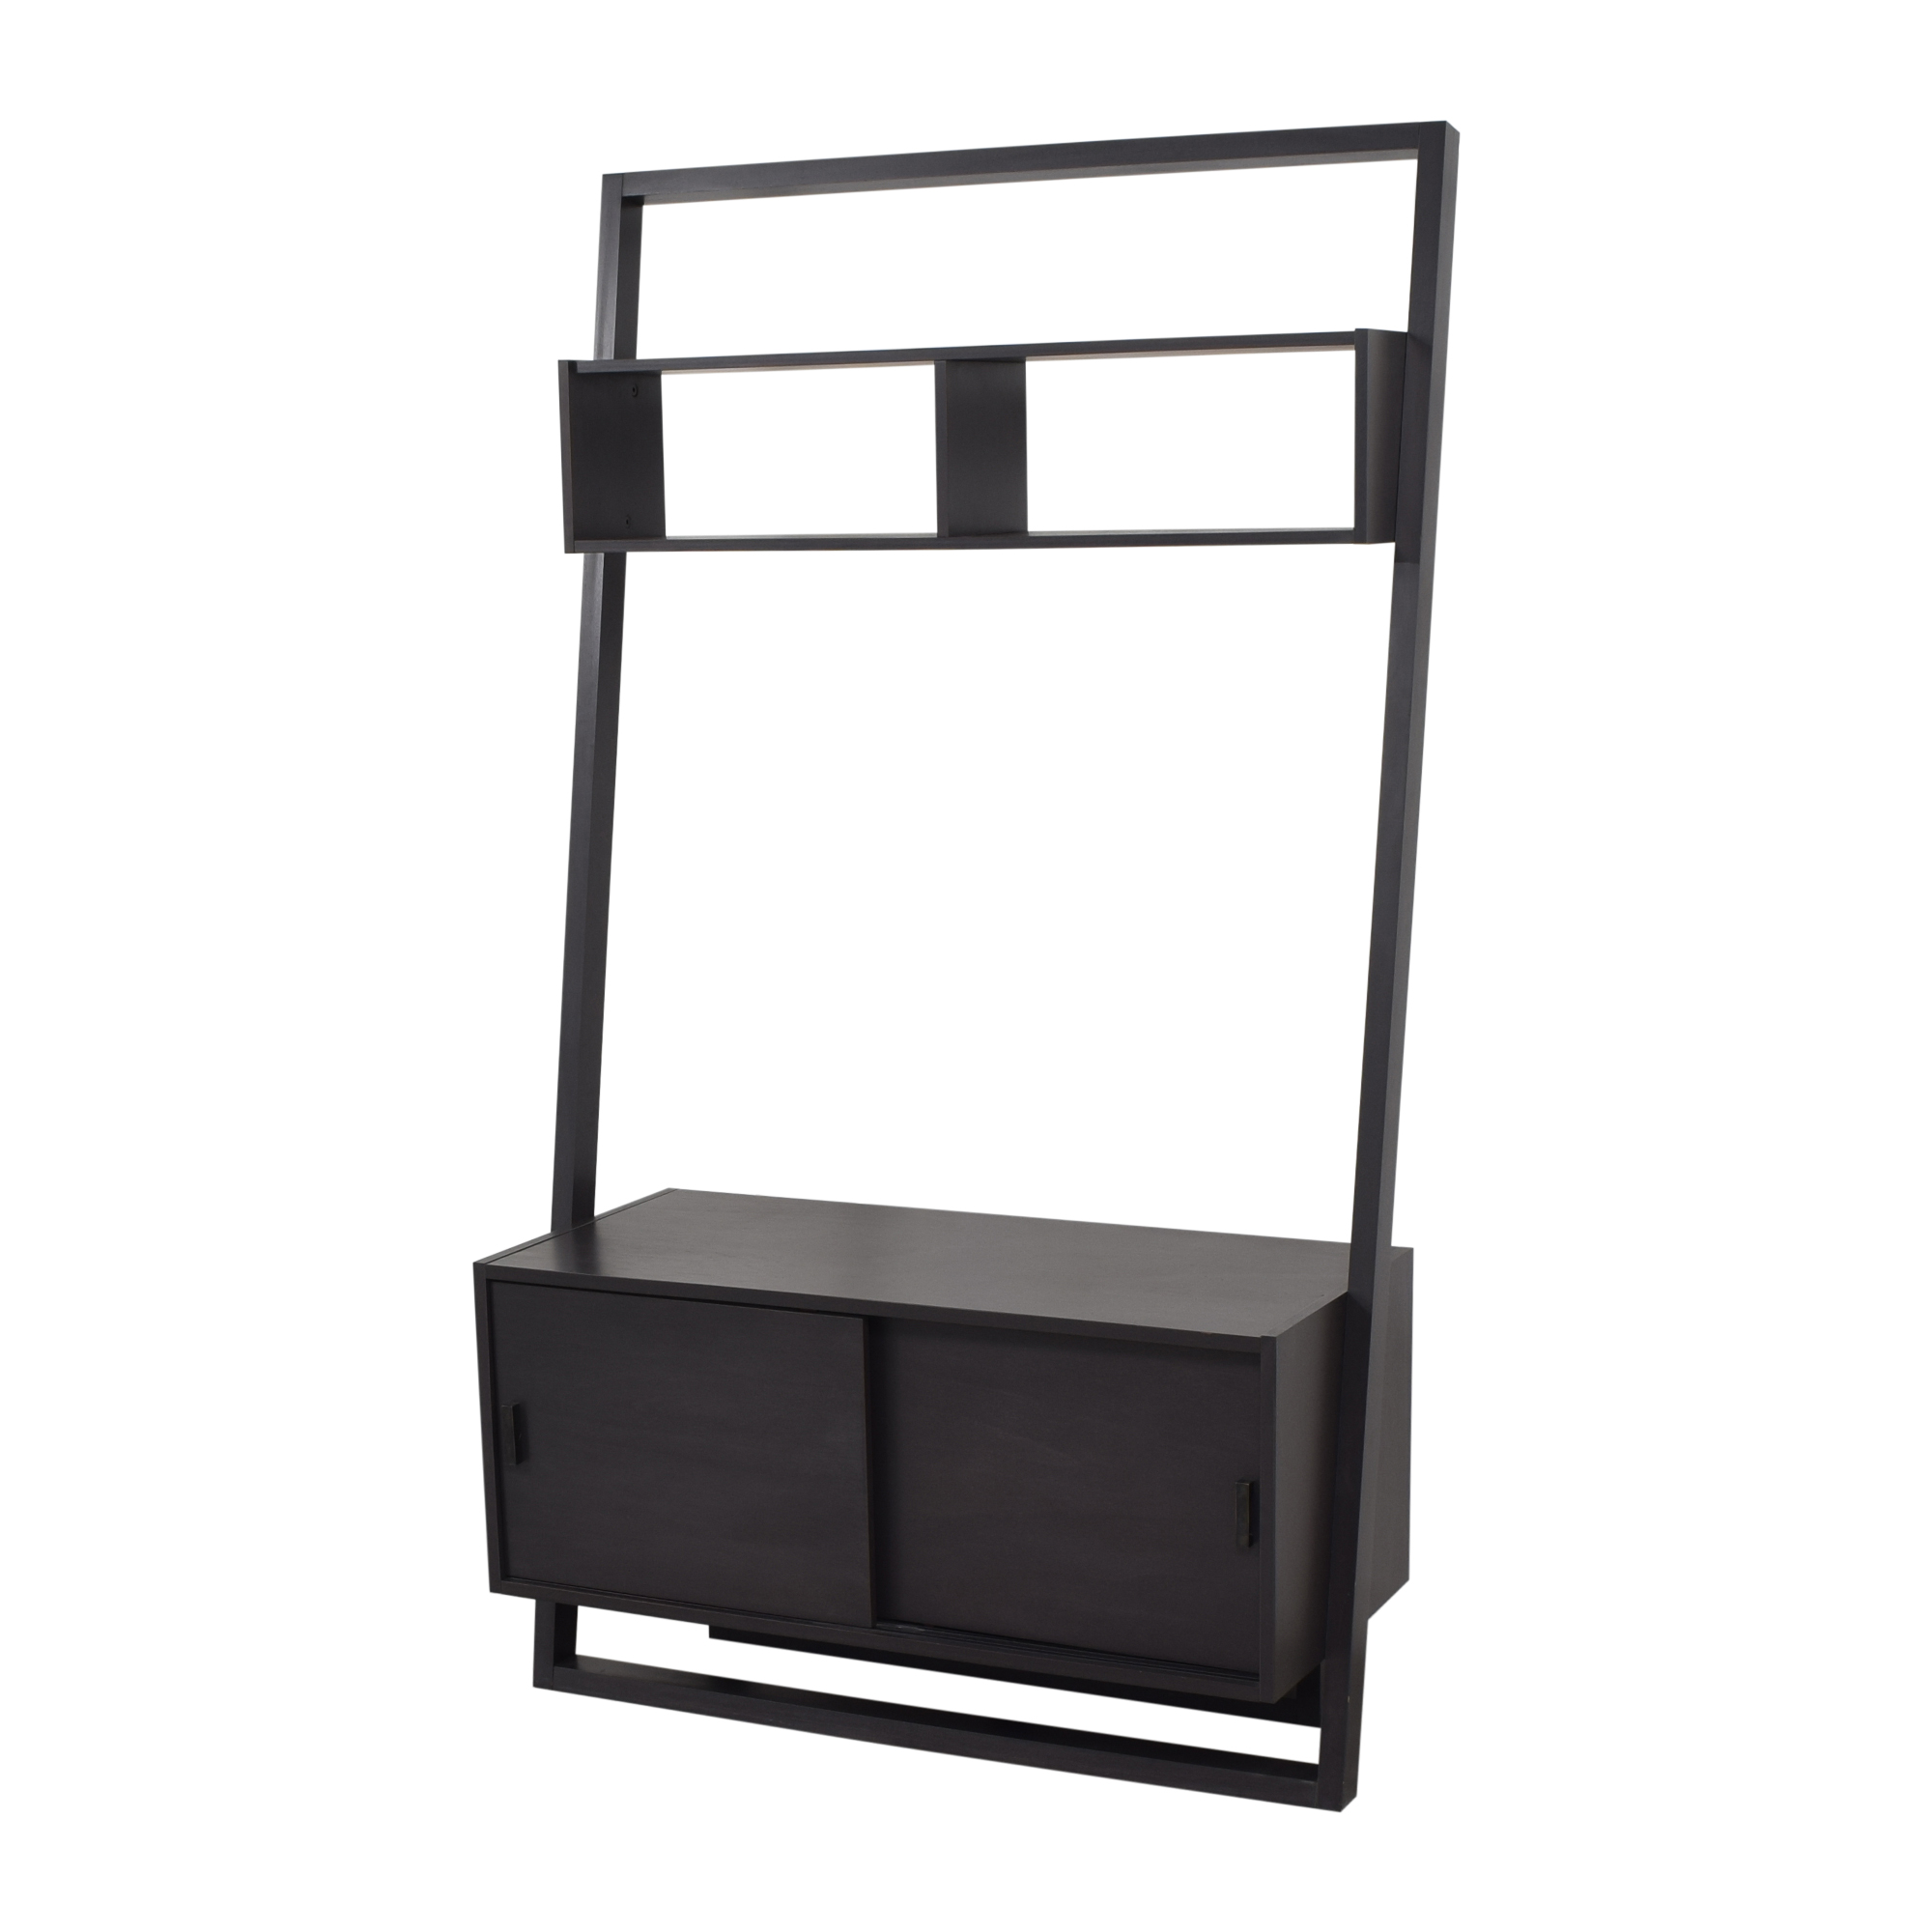 Crate & Barrel Crate & Barrel Sloane Leaning Media Stand ct